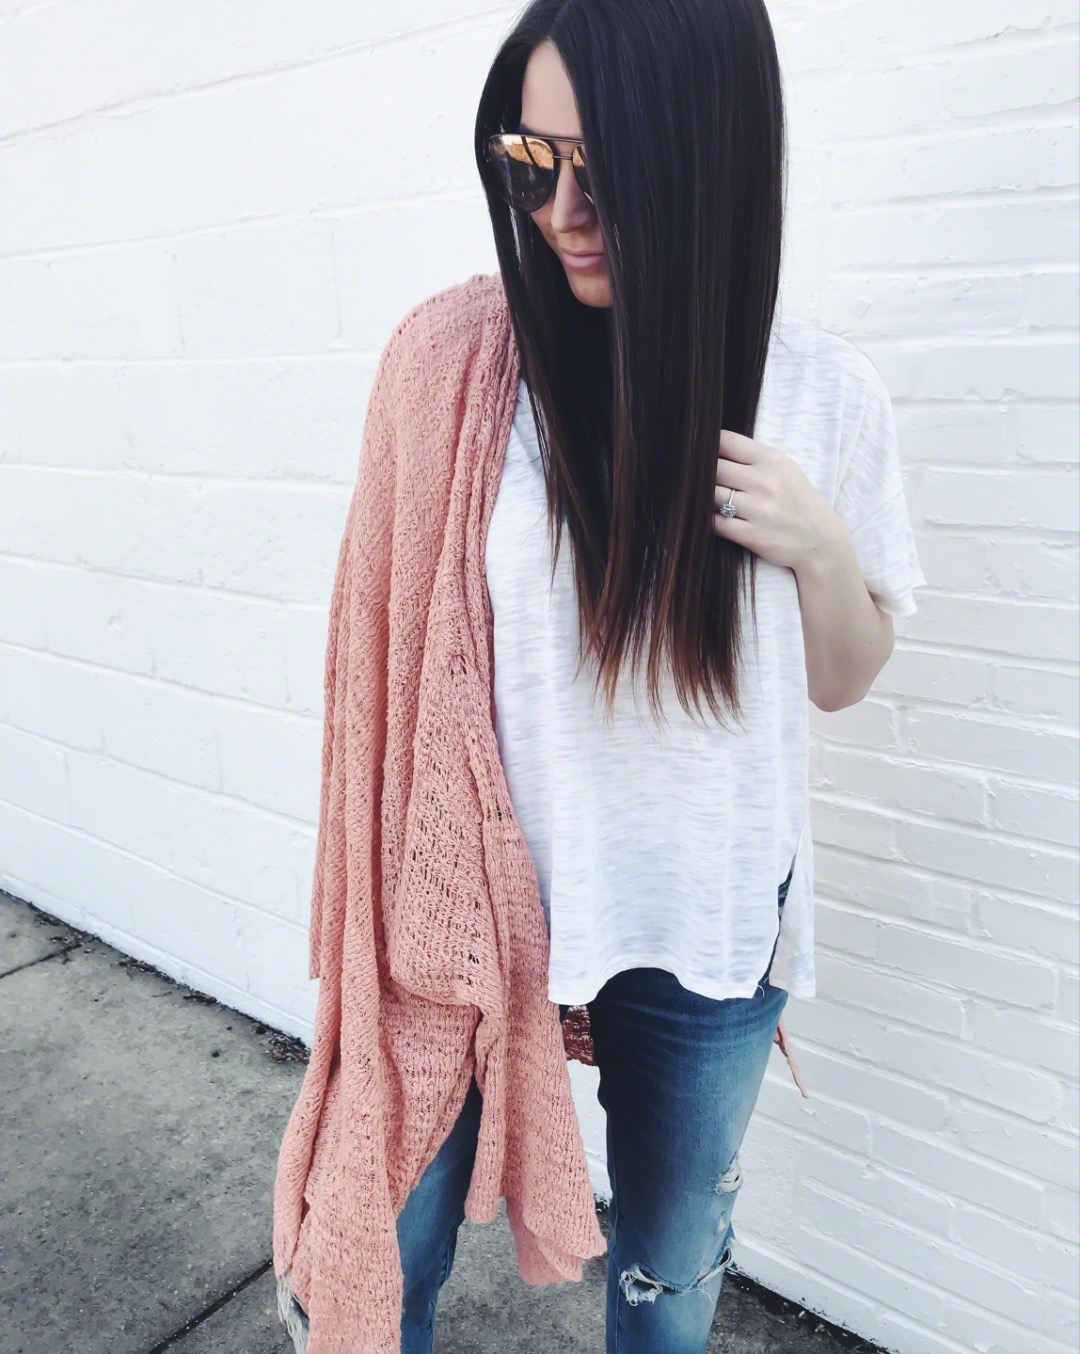 Instagram Round Up + Current Sales | Pine Barren Beauty | outfit of the day, outfit details, spring outfit, free people tee, light weight cardigan, distressed denim